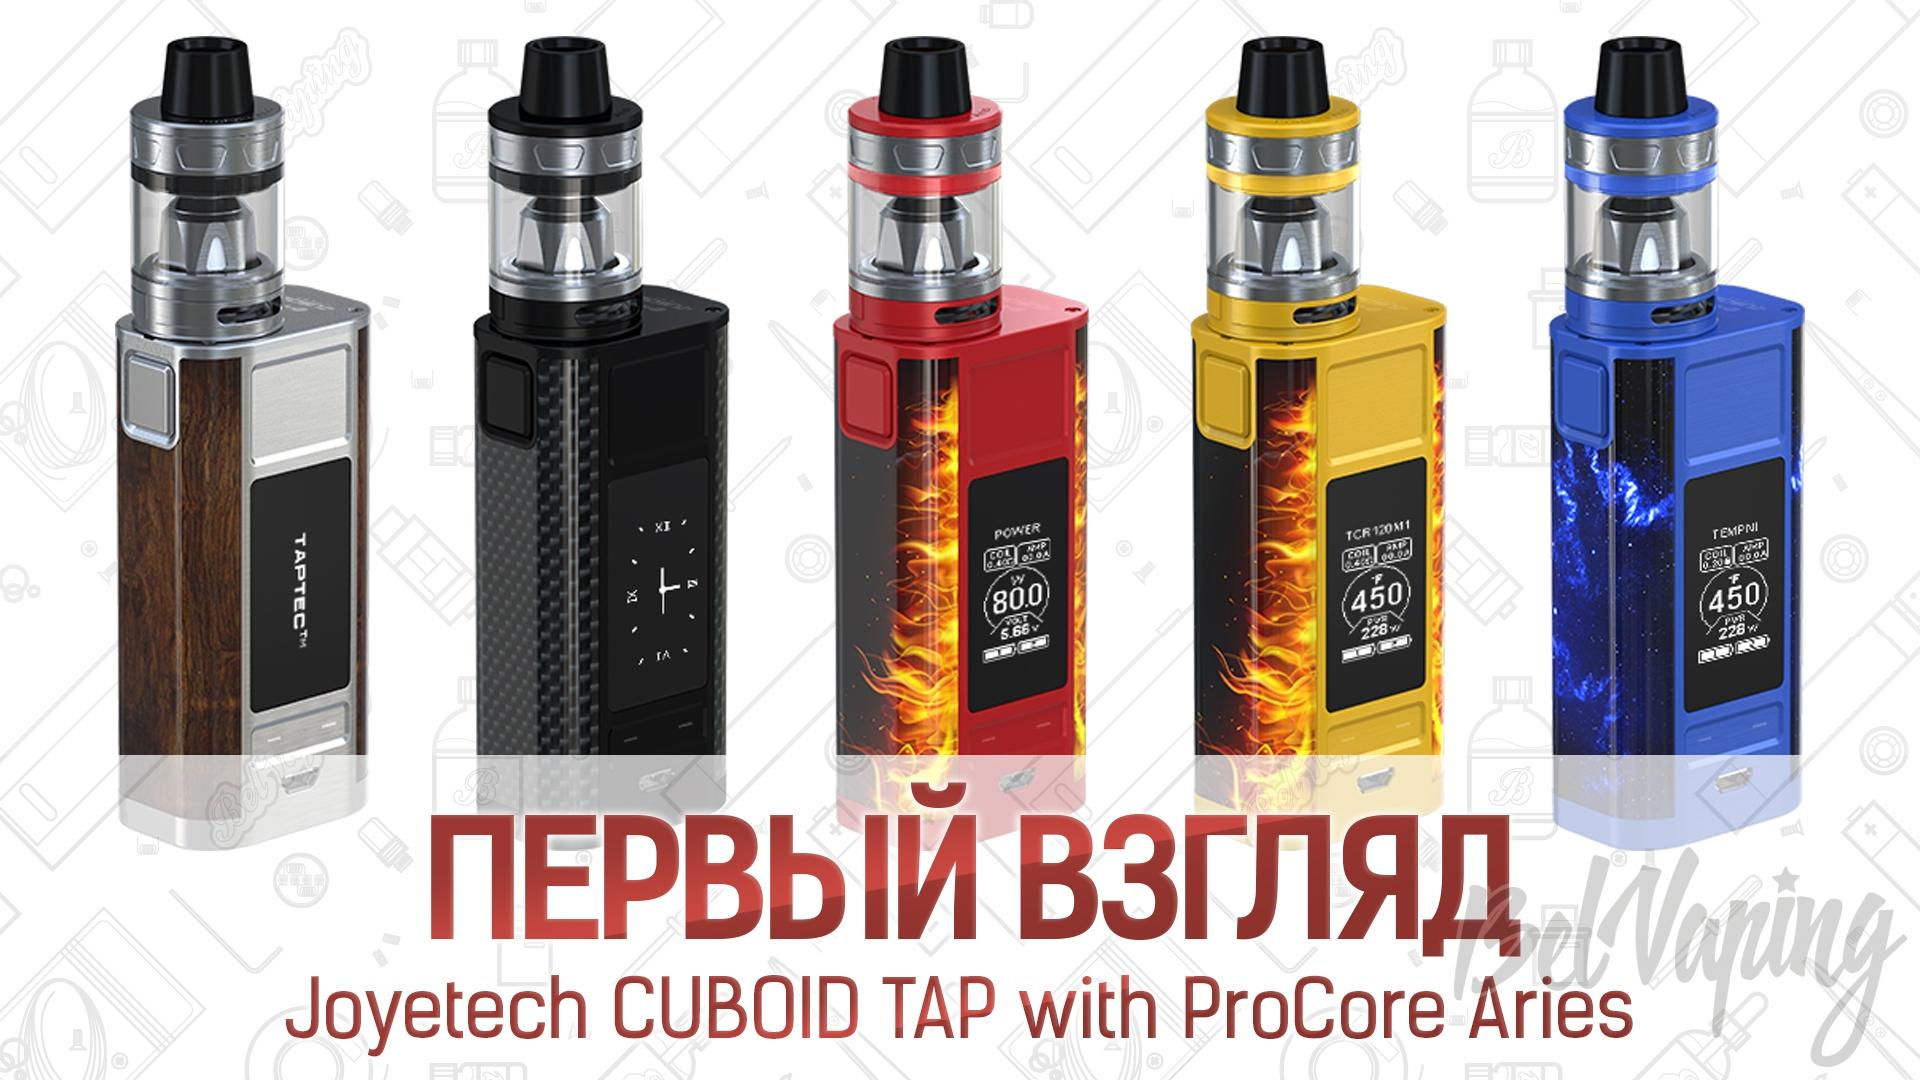 Joyetech CUBOID TAP with ProCore Aries. Первый взгляд